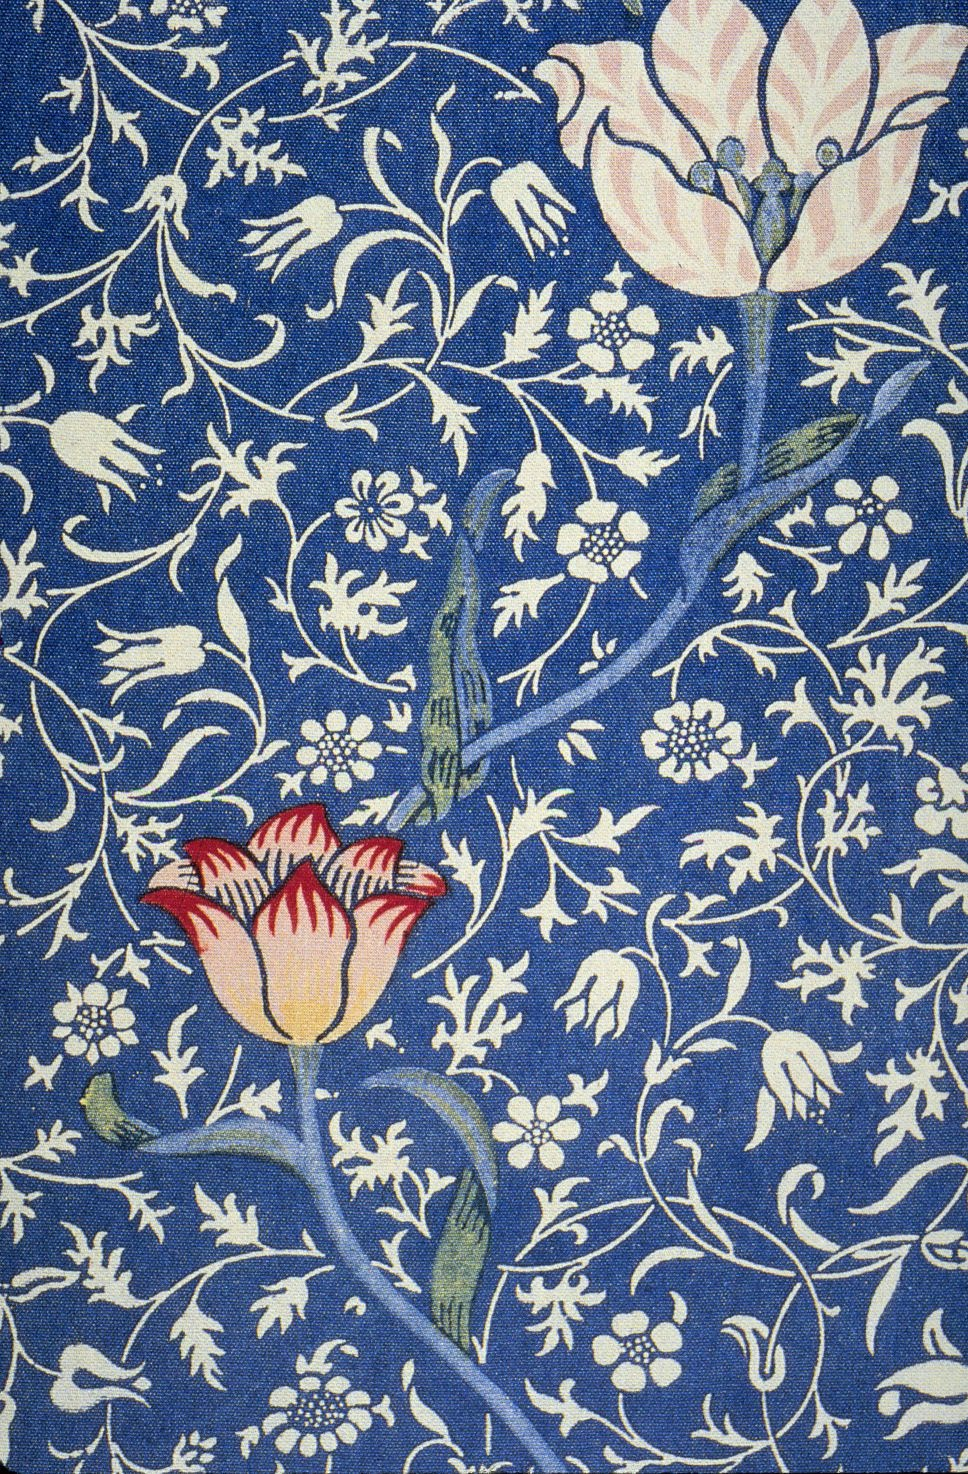 By William Morris, 1885. Image credit: Unknown